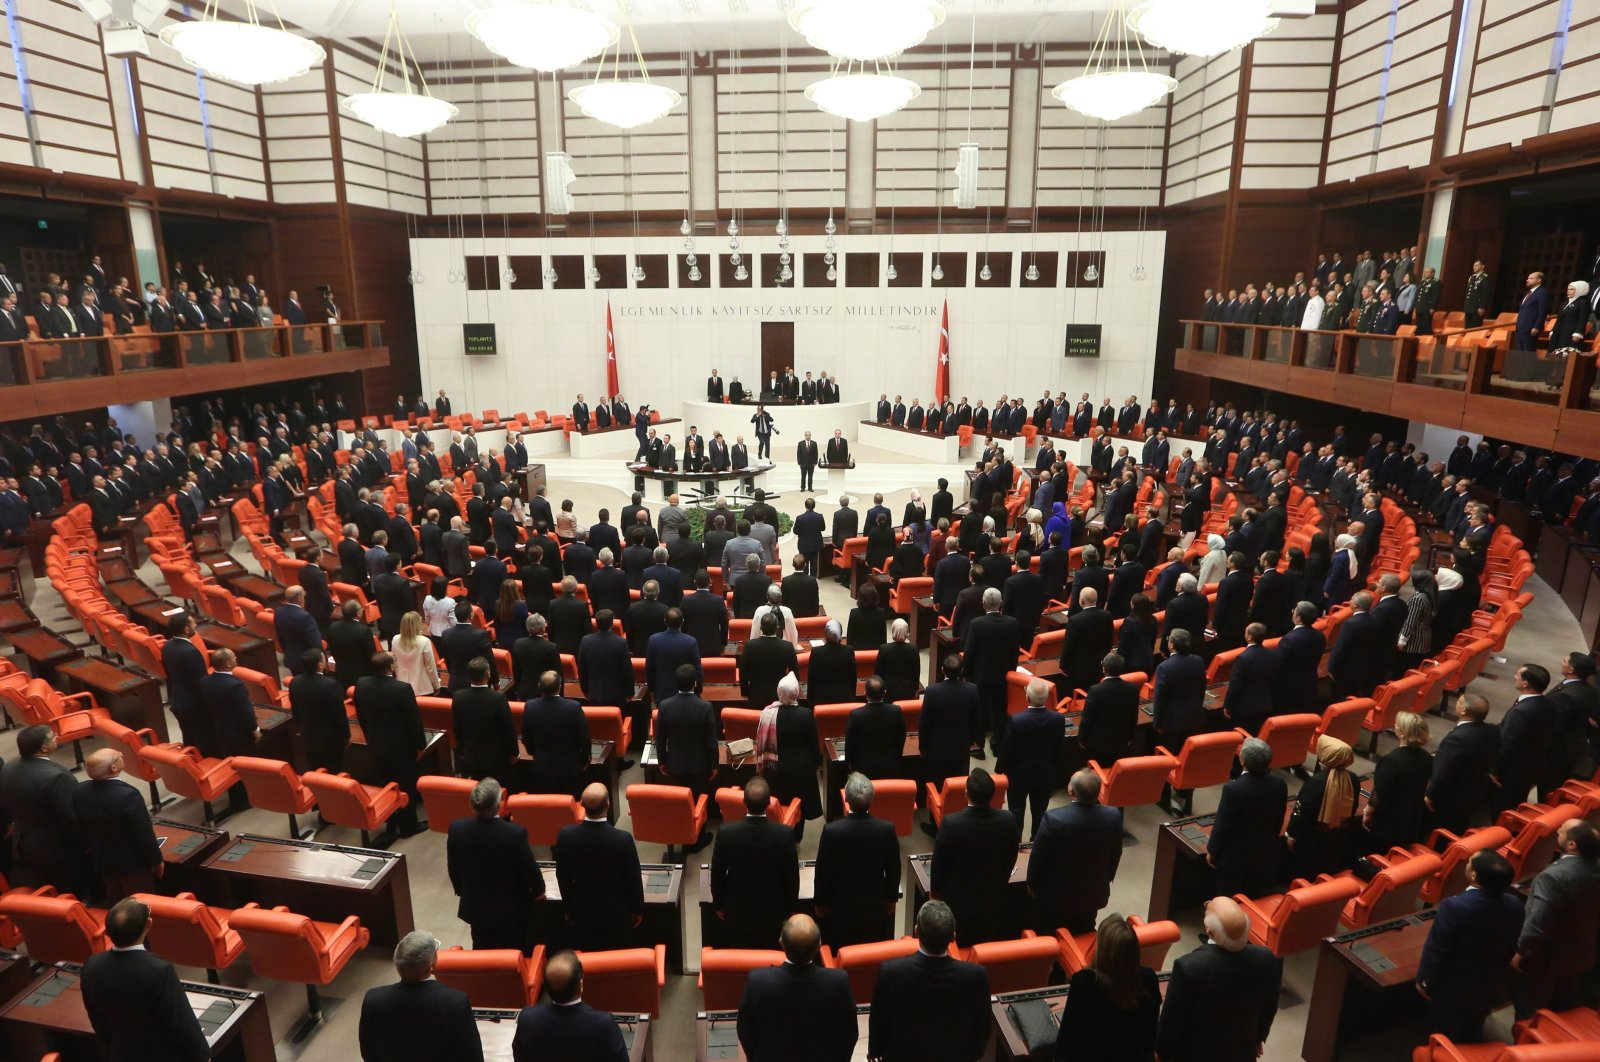 Turkish President Recep Tayyip Erdoğan (C) takes an oath of office before lawmakers under a new system of government at the Grand National Assembly in Ankara, Turkey, July 9, 2018. (Getty Images Photo)